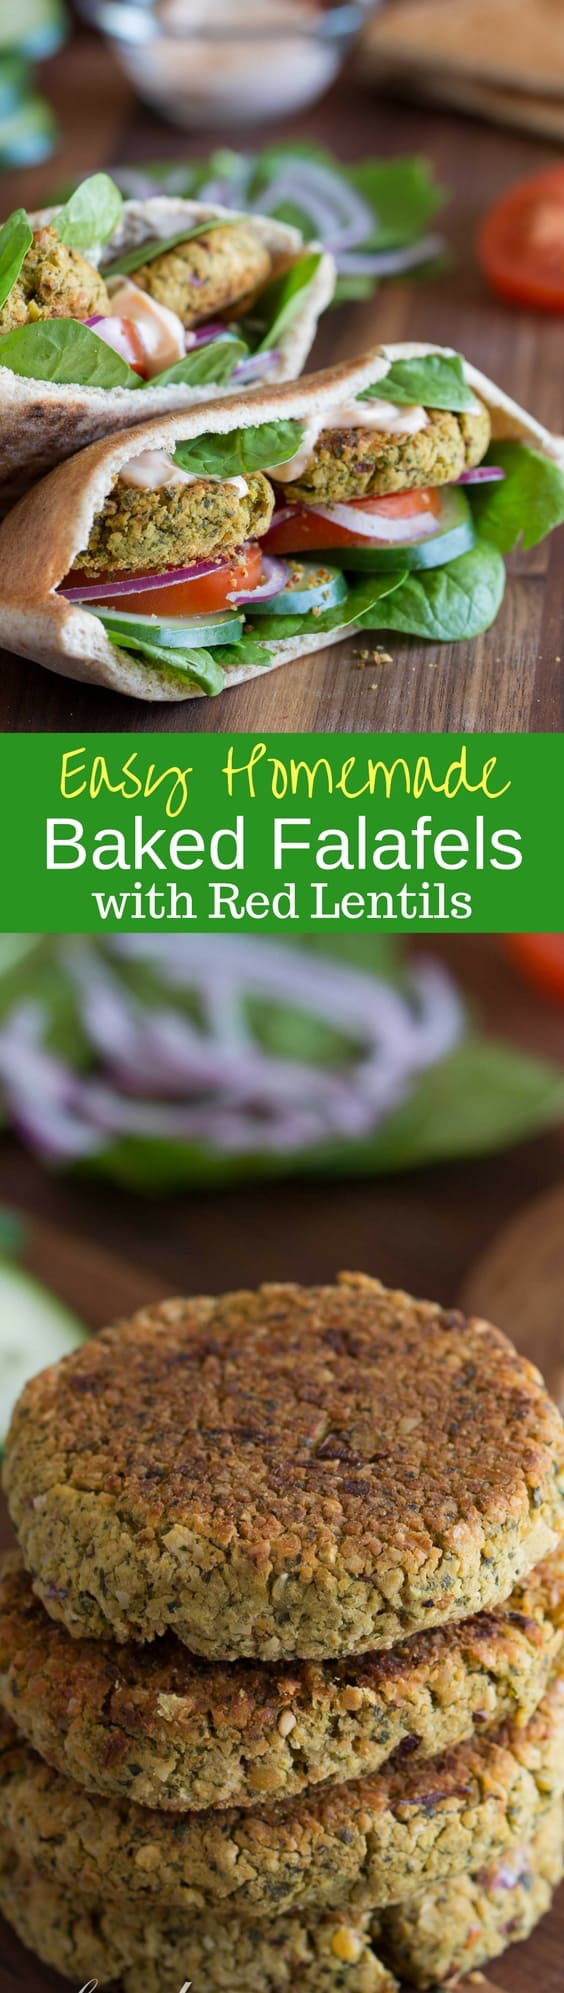 Baked Falafels with Red Lentils -A hearty, healthy meatless grain and bean burger seasoned with the traditional falafel spices. Baked and served in a pita pocket for a richly flavored and spicy weeknight meal. www.savingdessert.com